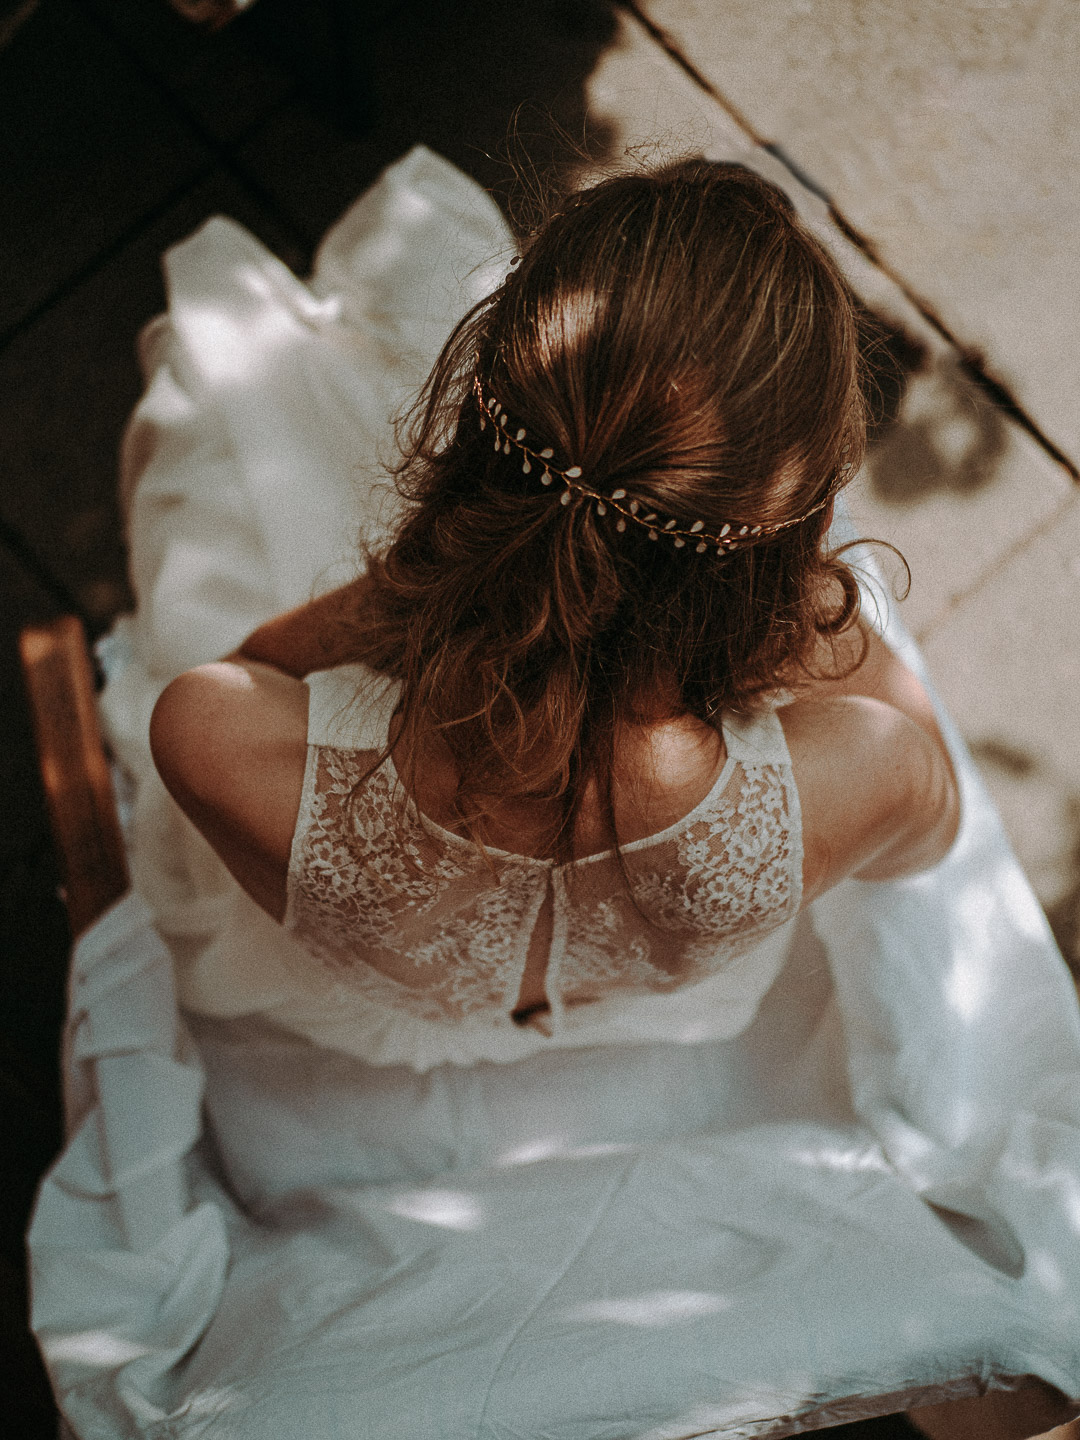 Wedding photography - vintage boho style bridal wearing beautiful white bridal dress esküvő fotó